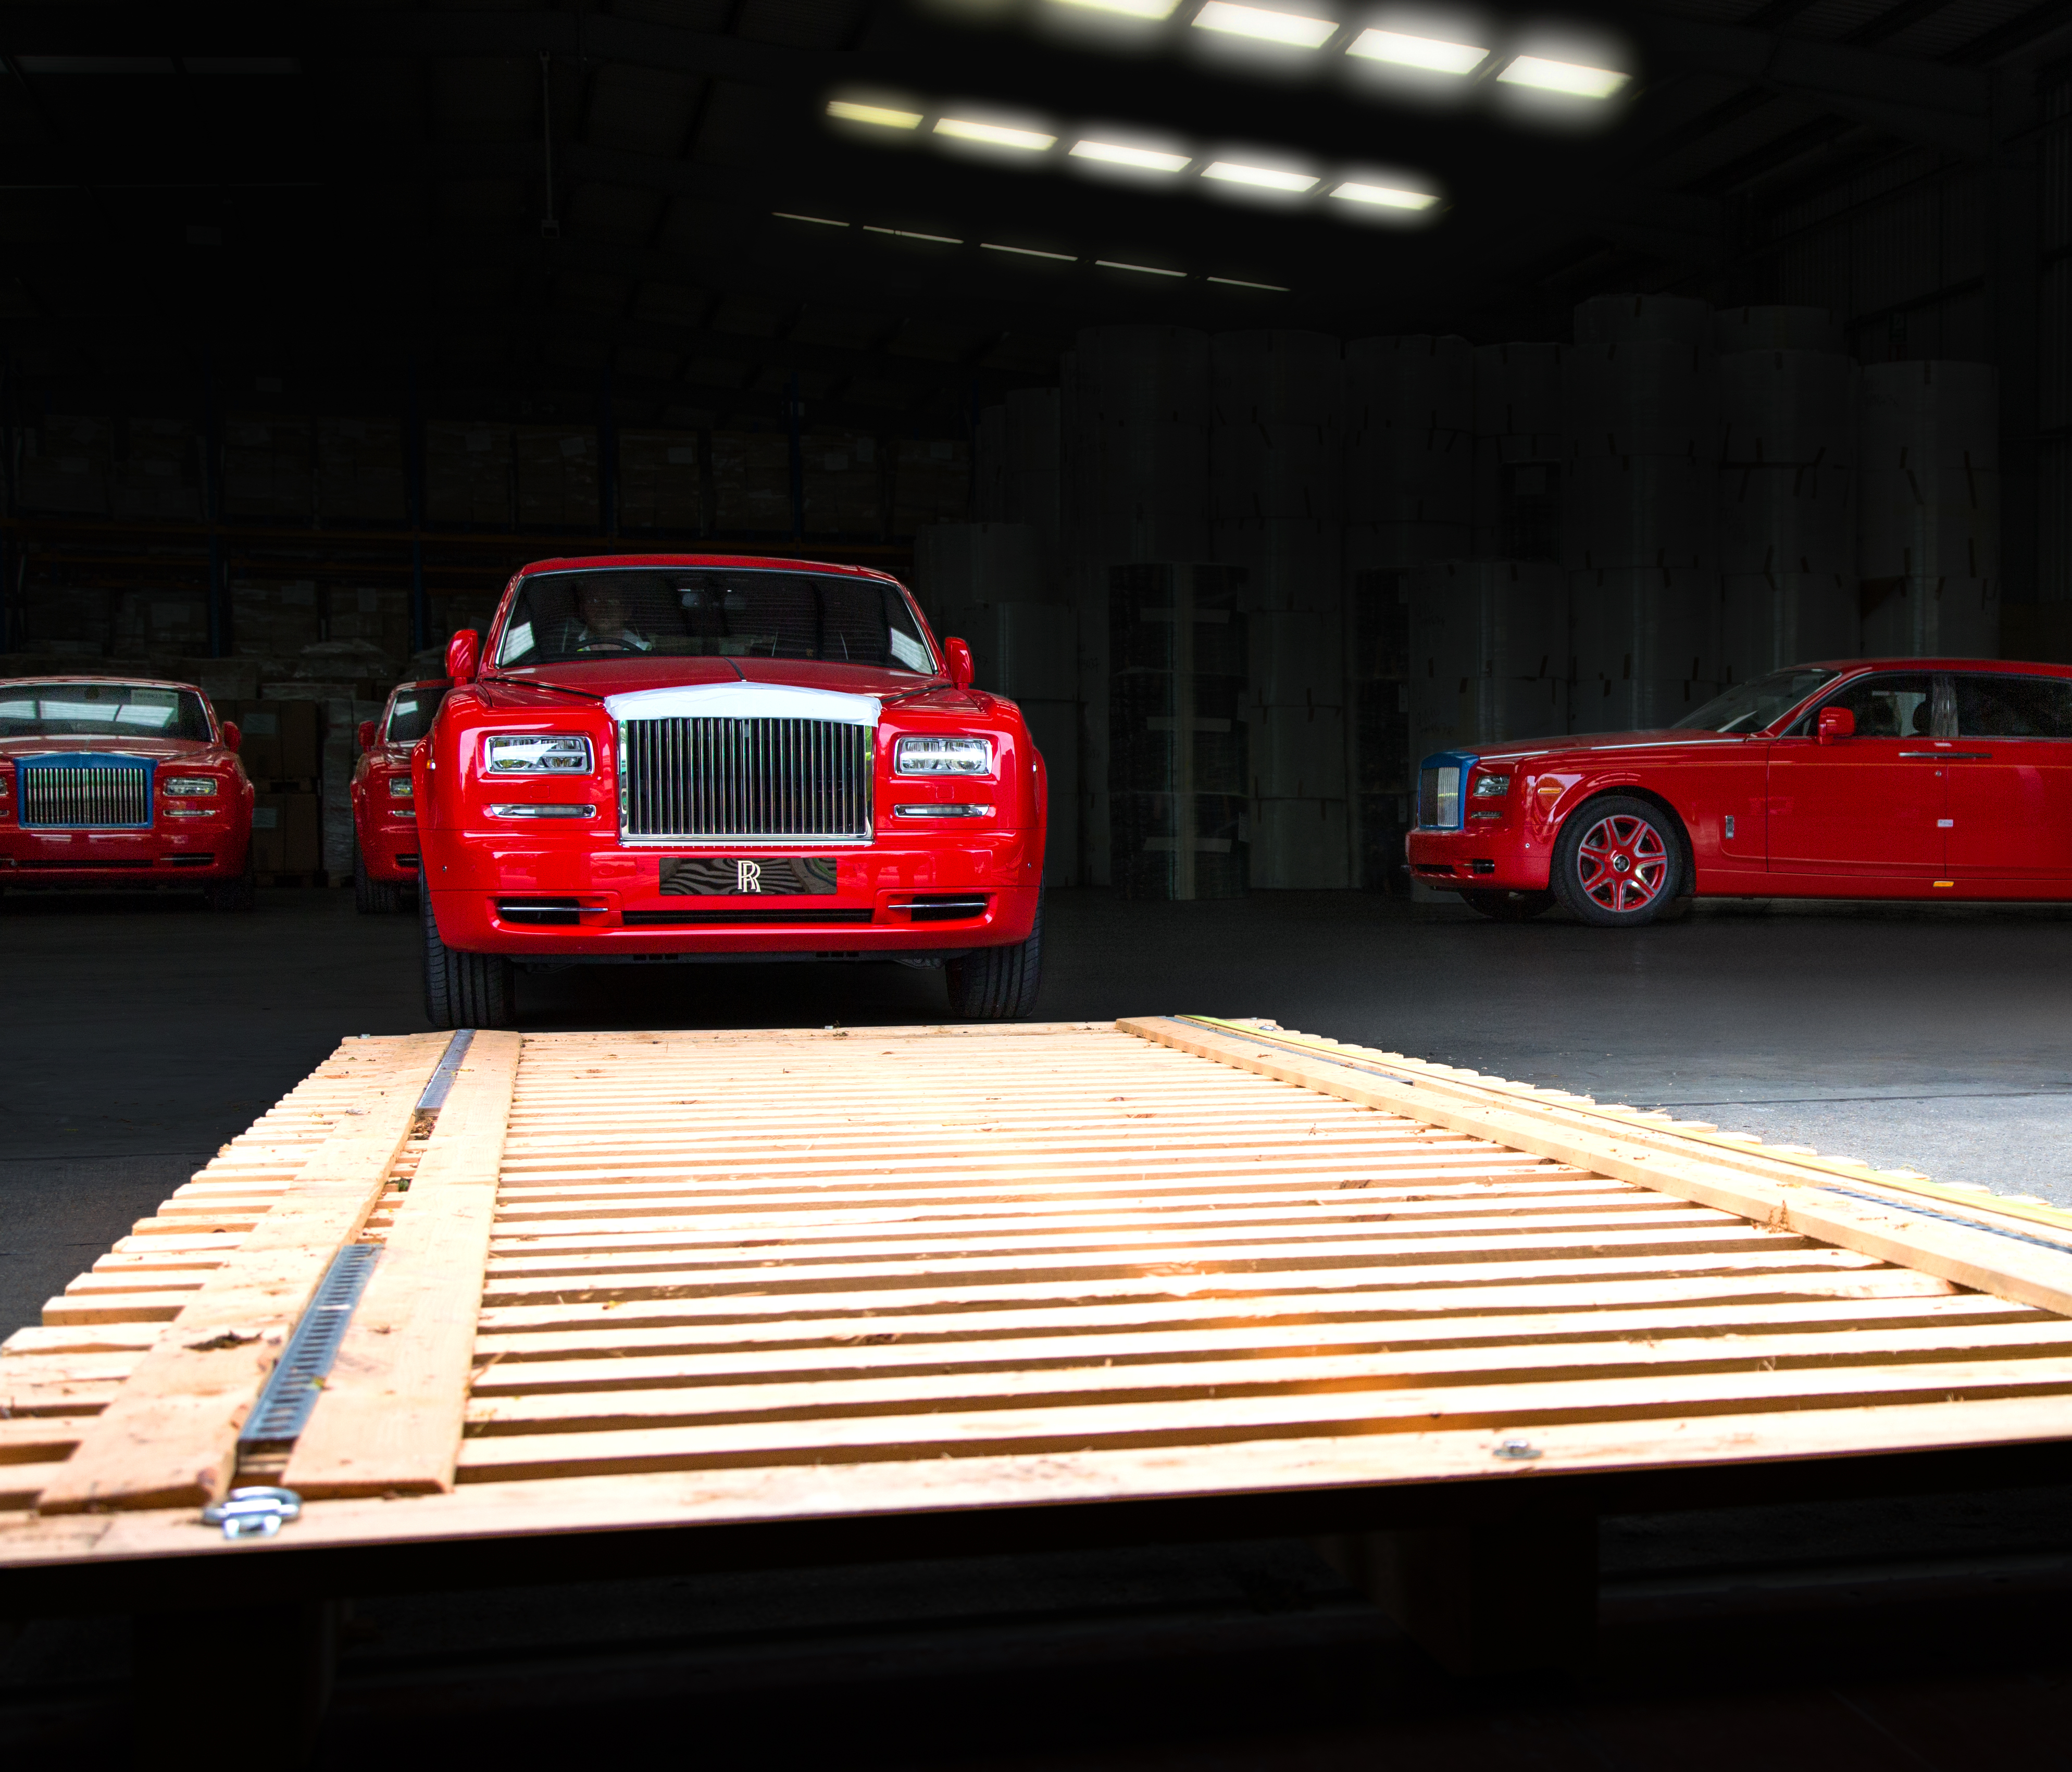 30 Bespoke Rolls-Royce Phantoms Arrive at The 13 Hotel in Macau